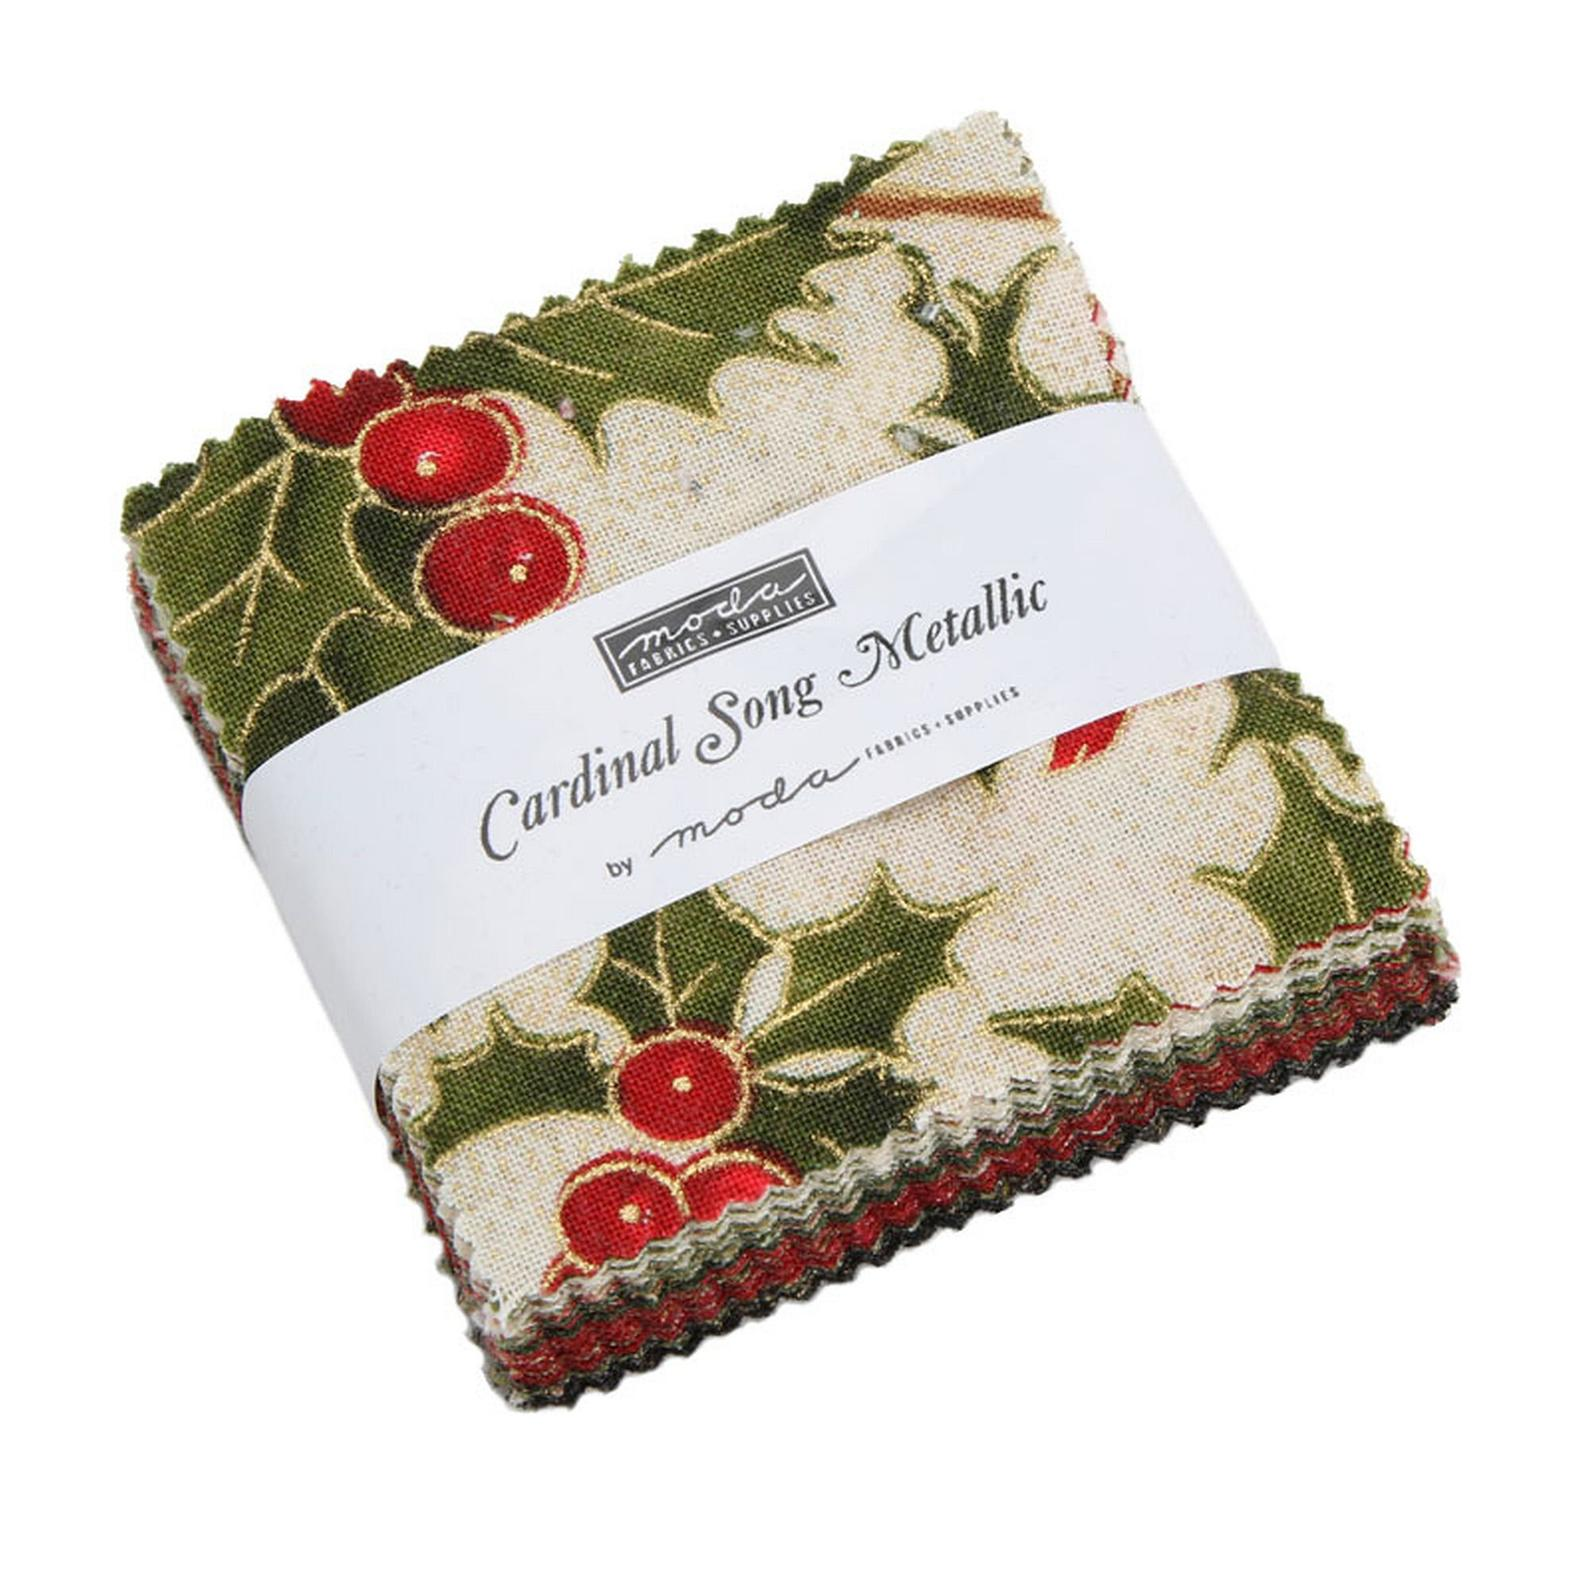 Moda Fabric Sweet Christmas Mini Charm Patchwork Quilting 2.5 Inch Squares